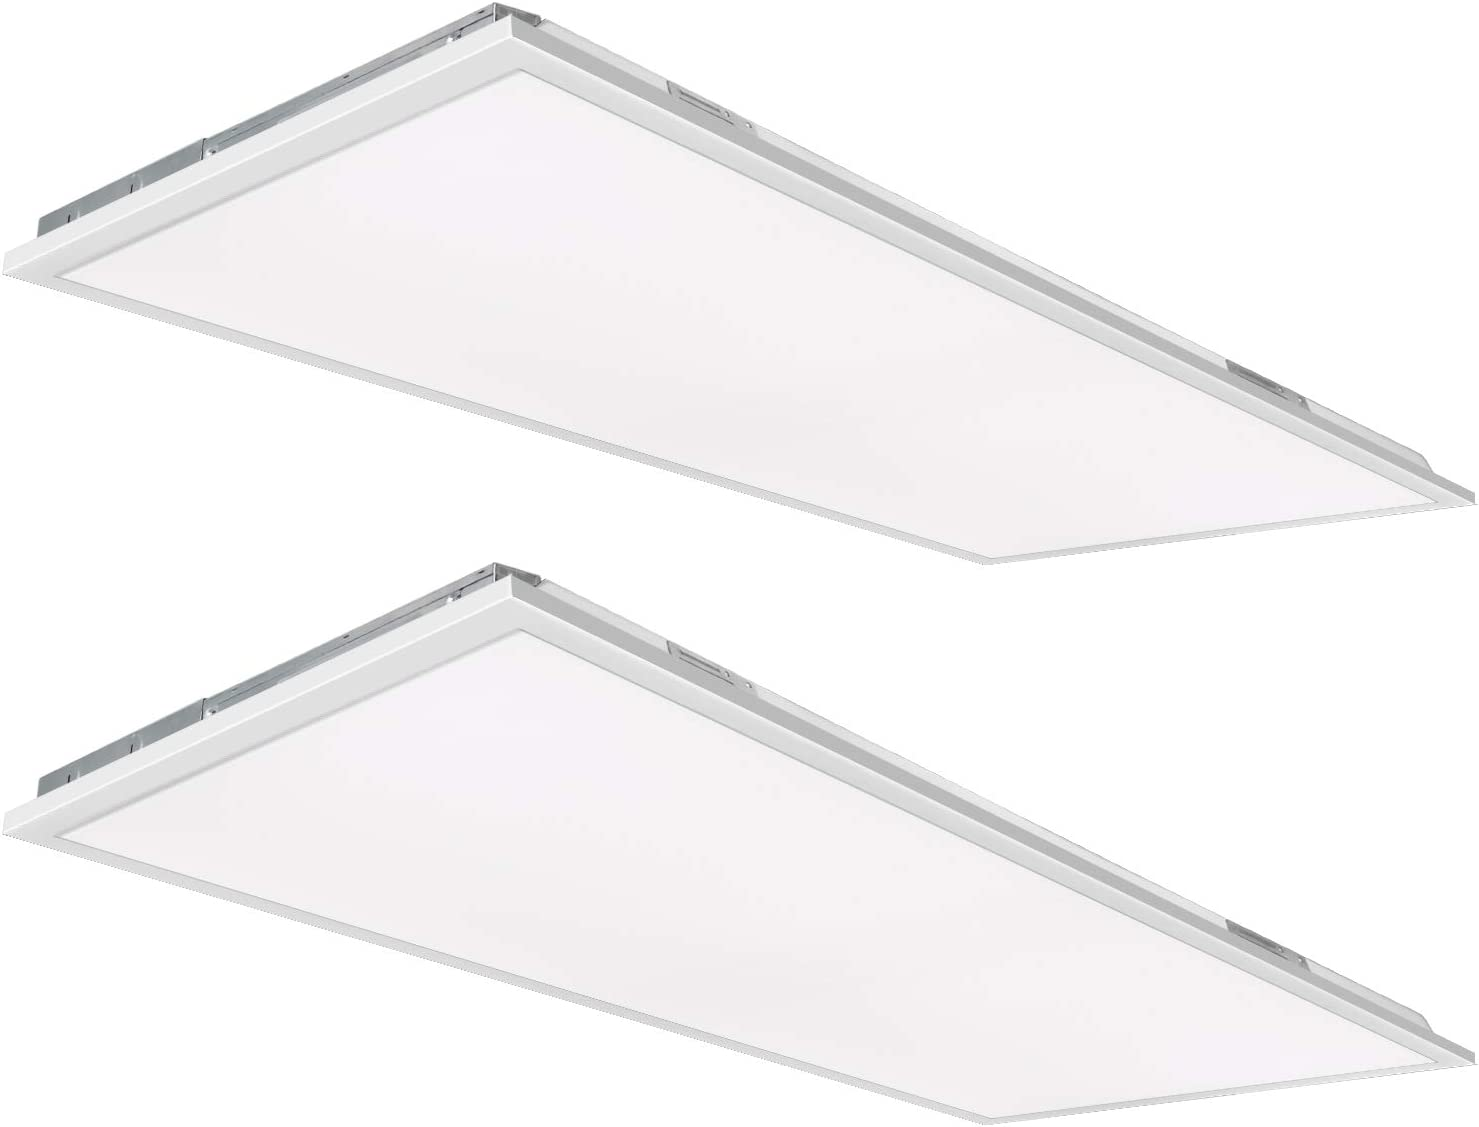 2x4 FT White LED Flat Panel Troffer Light, 50W 4000K Recessed Back-Lit Drop Ceiling Light, 5250lm Lay in Fixture for Office, 0-10V Dimmable, 3-Lamp F32T8 Fixture Replacement, 2 Pack